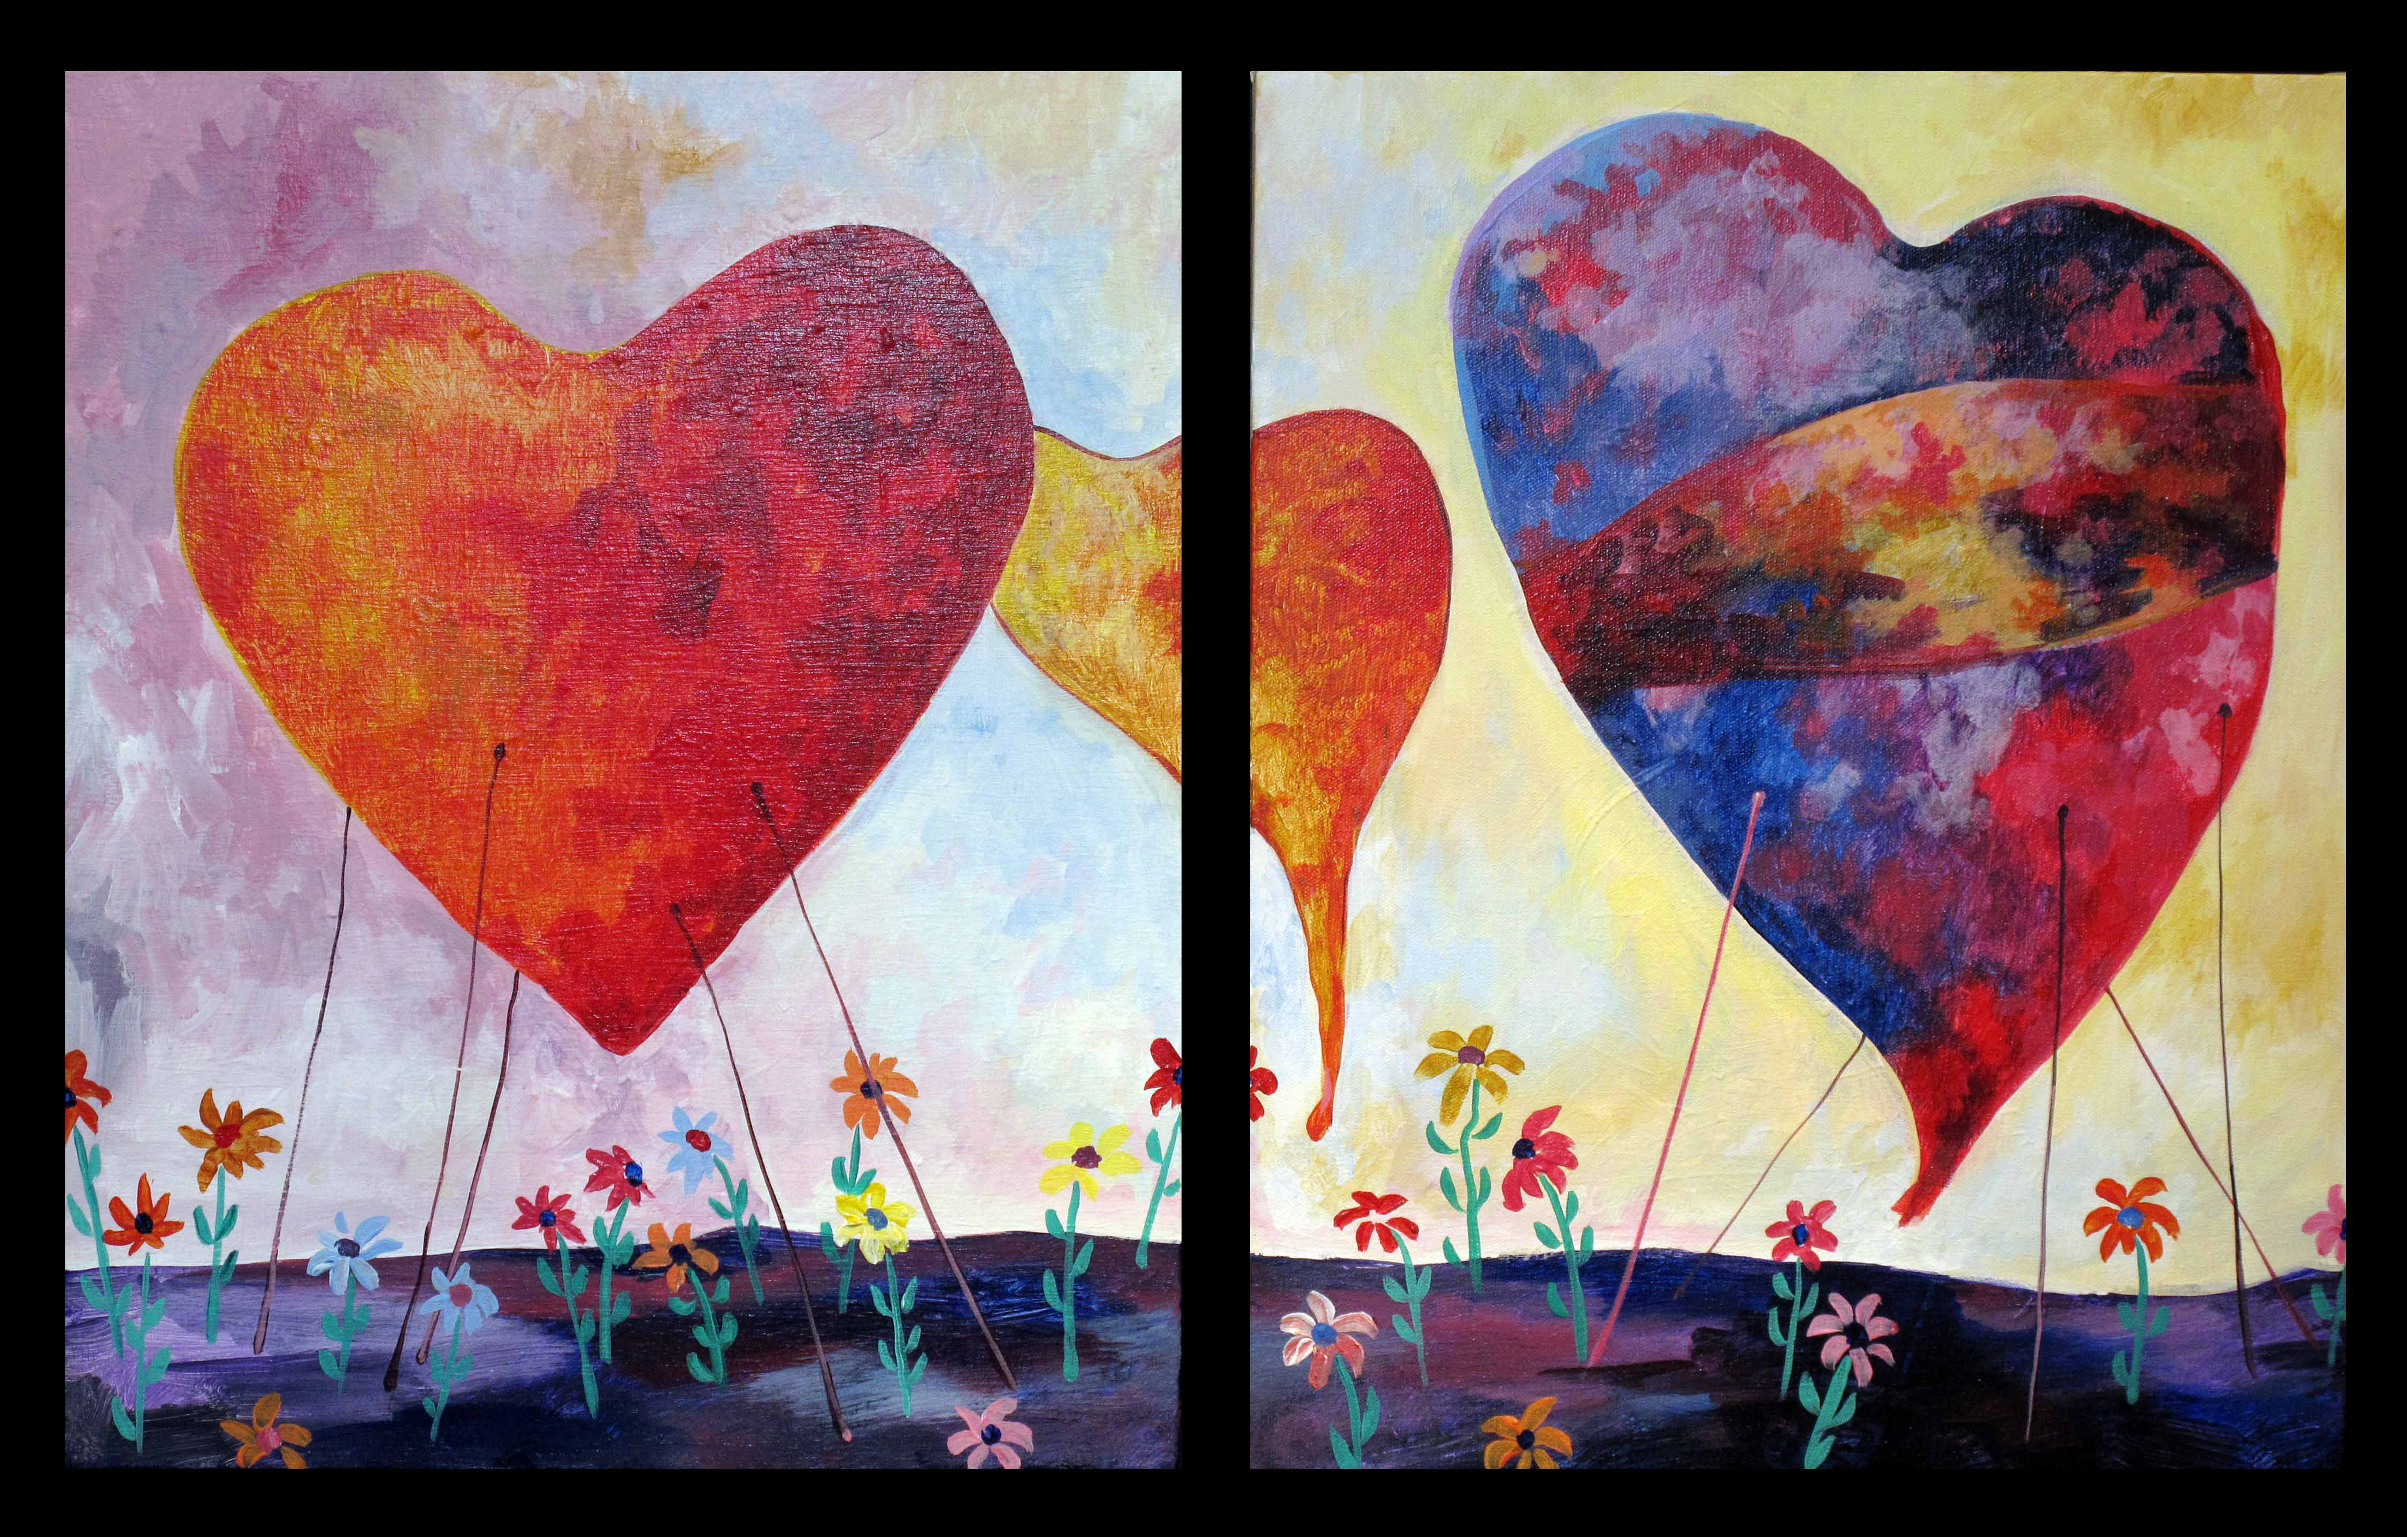 heart-air-balloons